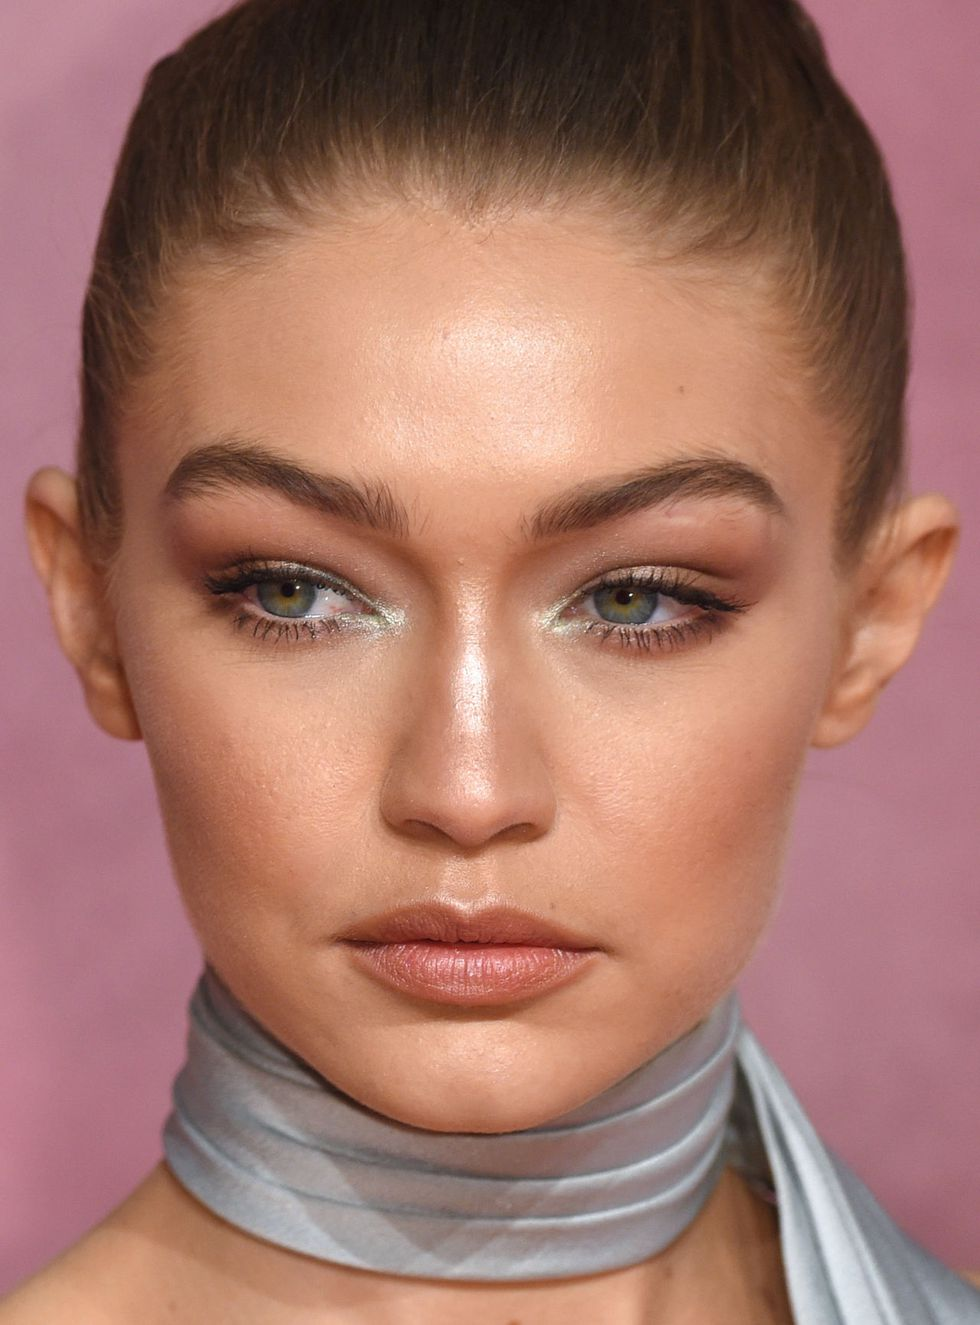 soft-natural-how-to-do-your-makeup-for-wedding-guest-beauty-glowing-skin-gigihadid.jpg